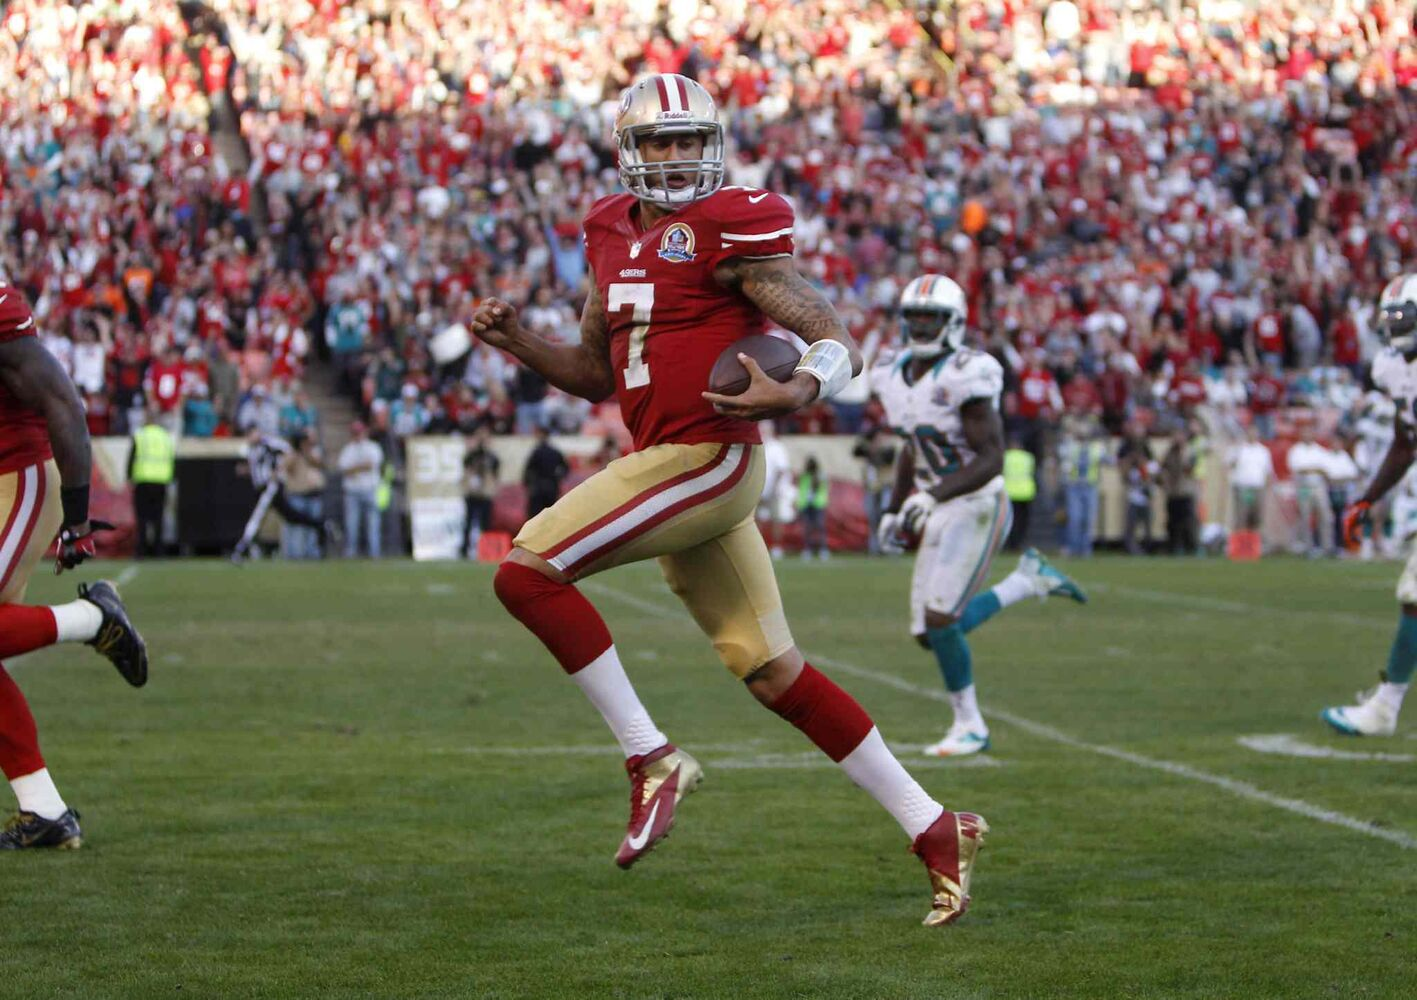 San Francisco 49ers' starting quarterback Colin Kaepernick (7) scores a touchdown against the Miami Dolphins in the fourth quarter of a December 2012 game. The San Francisco 49ers defeated the Miami Dolphins, 27-13. (Nhat V. Meyer / San Jose Mercury News / MCT files)